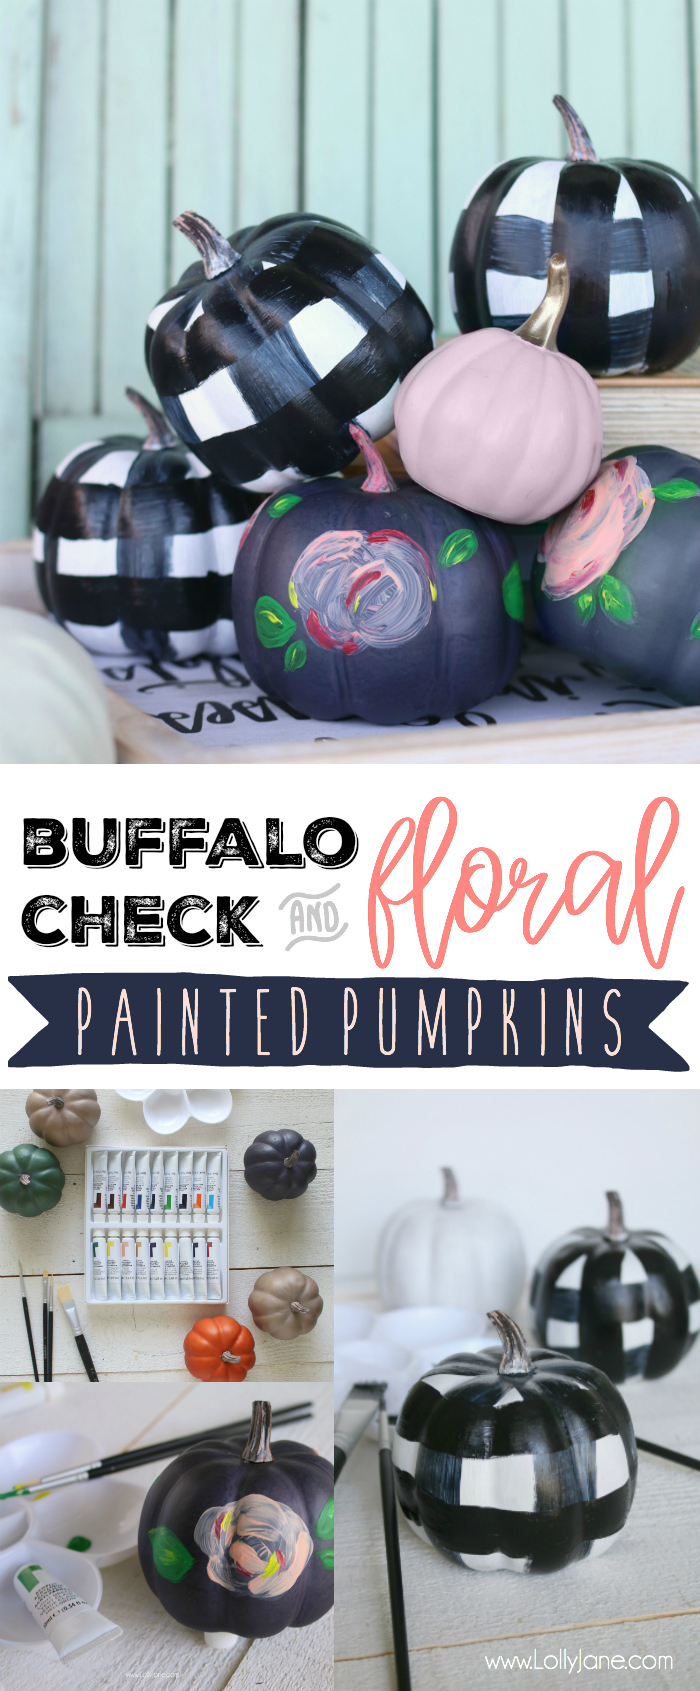 Painted Pumpkins by Lolly Jane